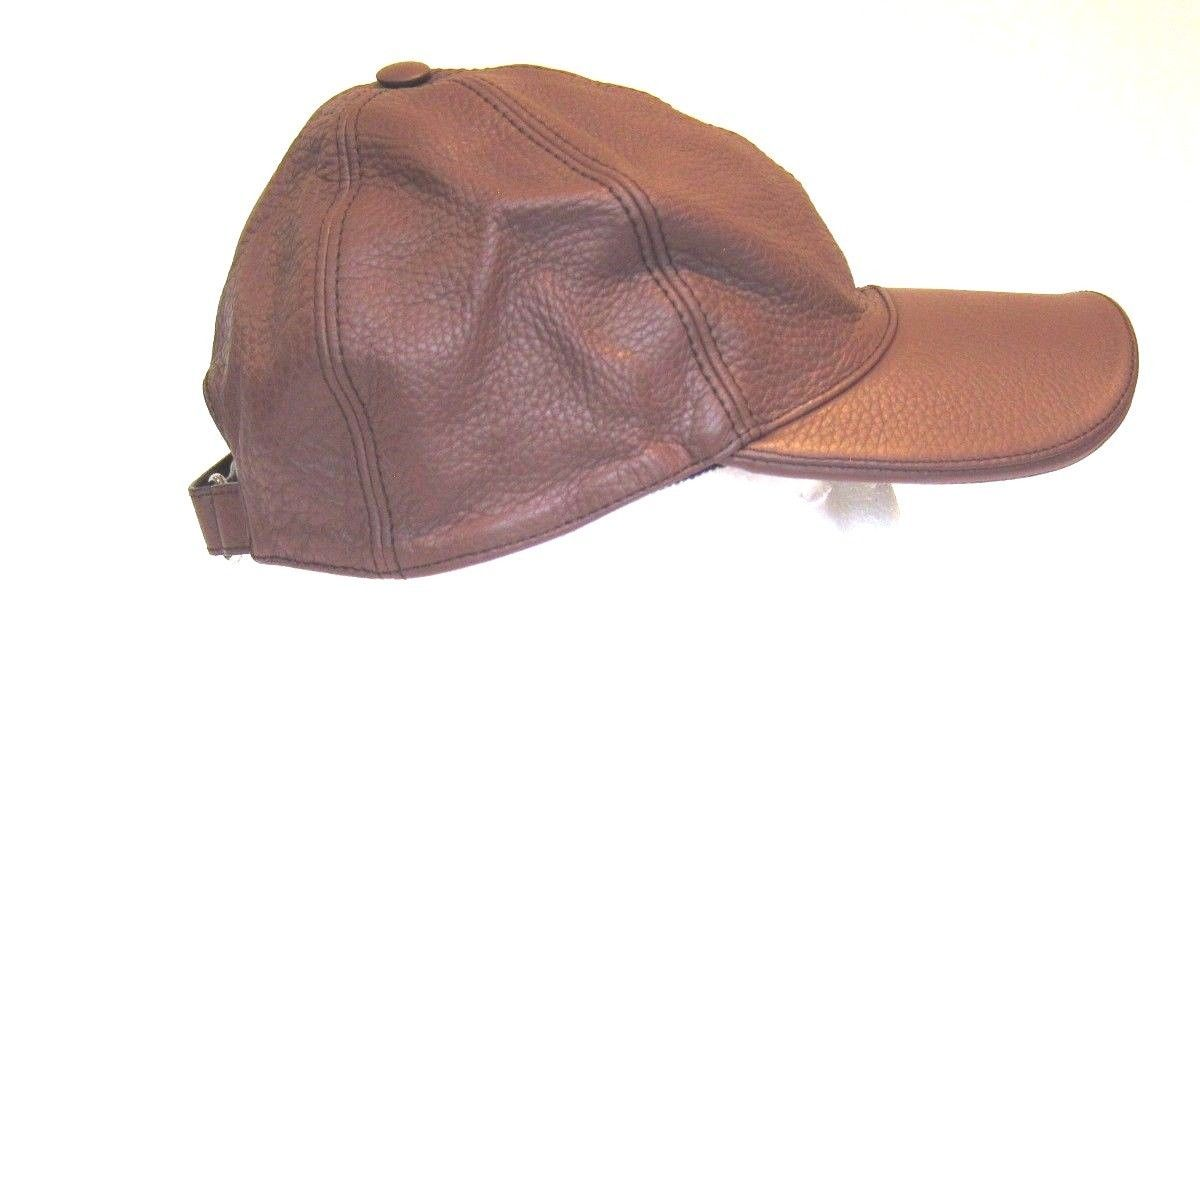 9e88fa5008d B-158135 New Gucci Logo Brown Leather Baseball Hat Cap Size Medium MD